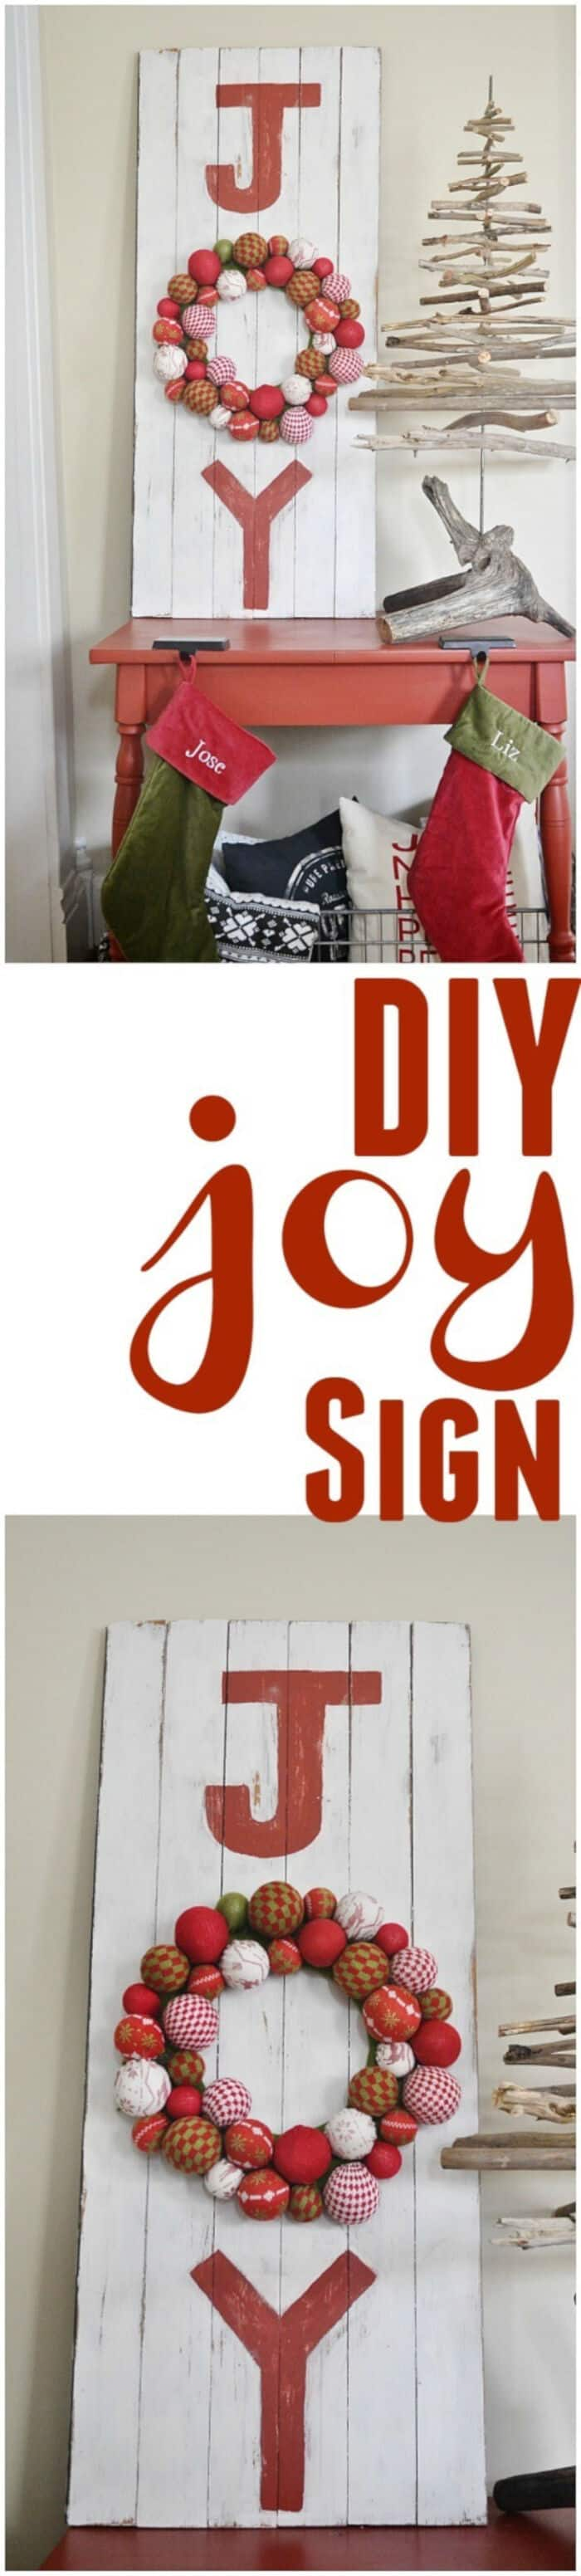 DIY Joy Sign by Liz Marie